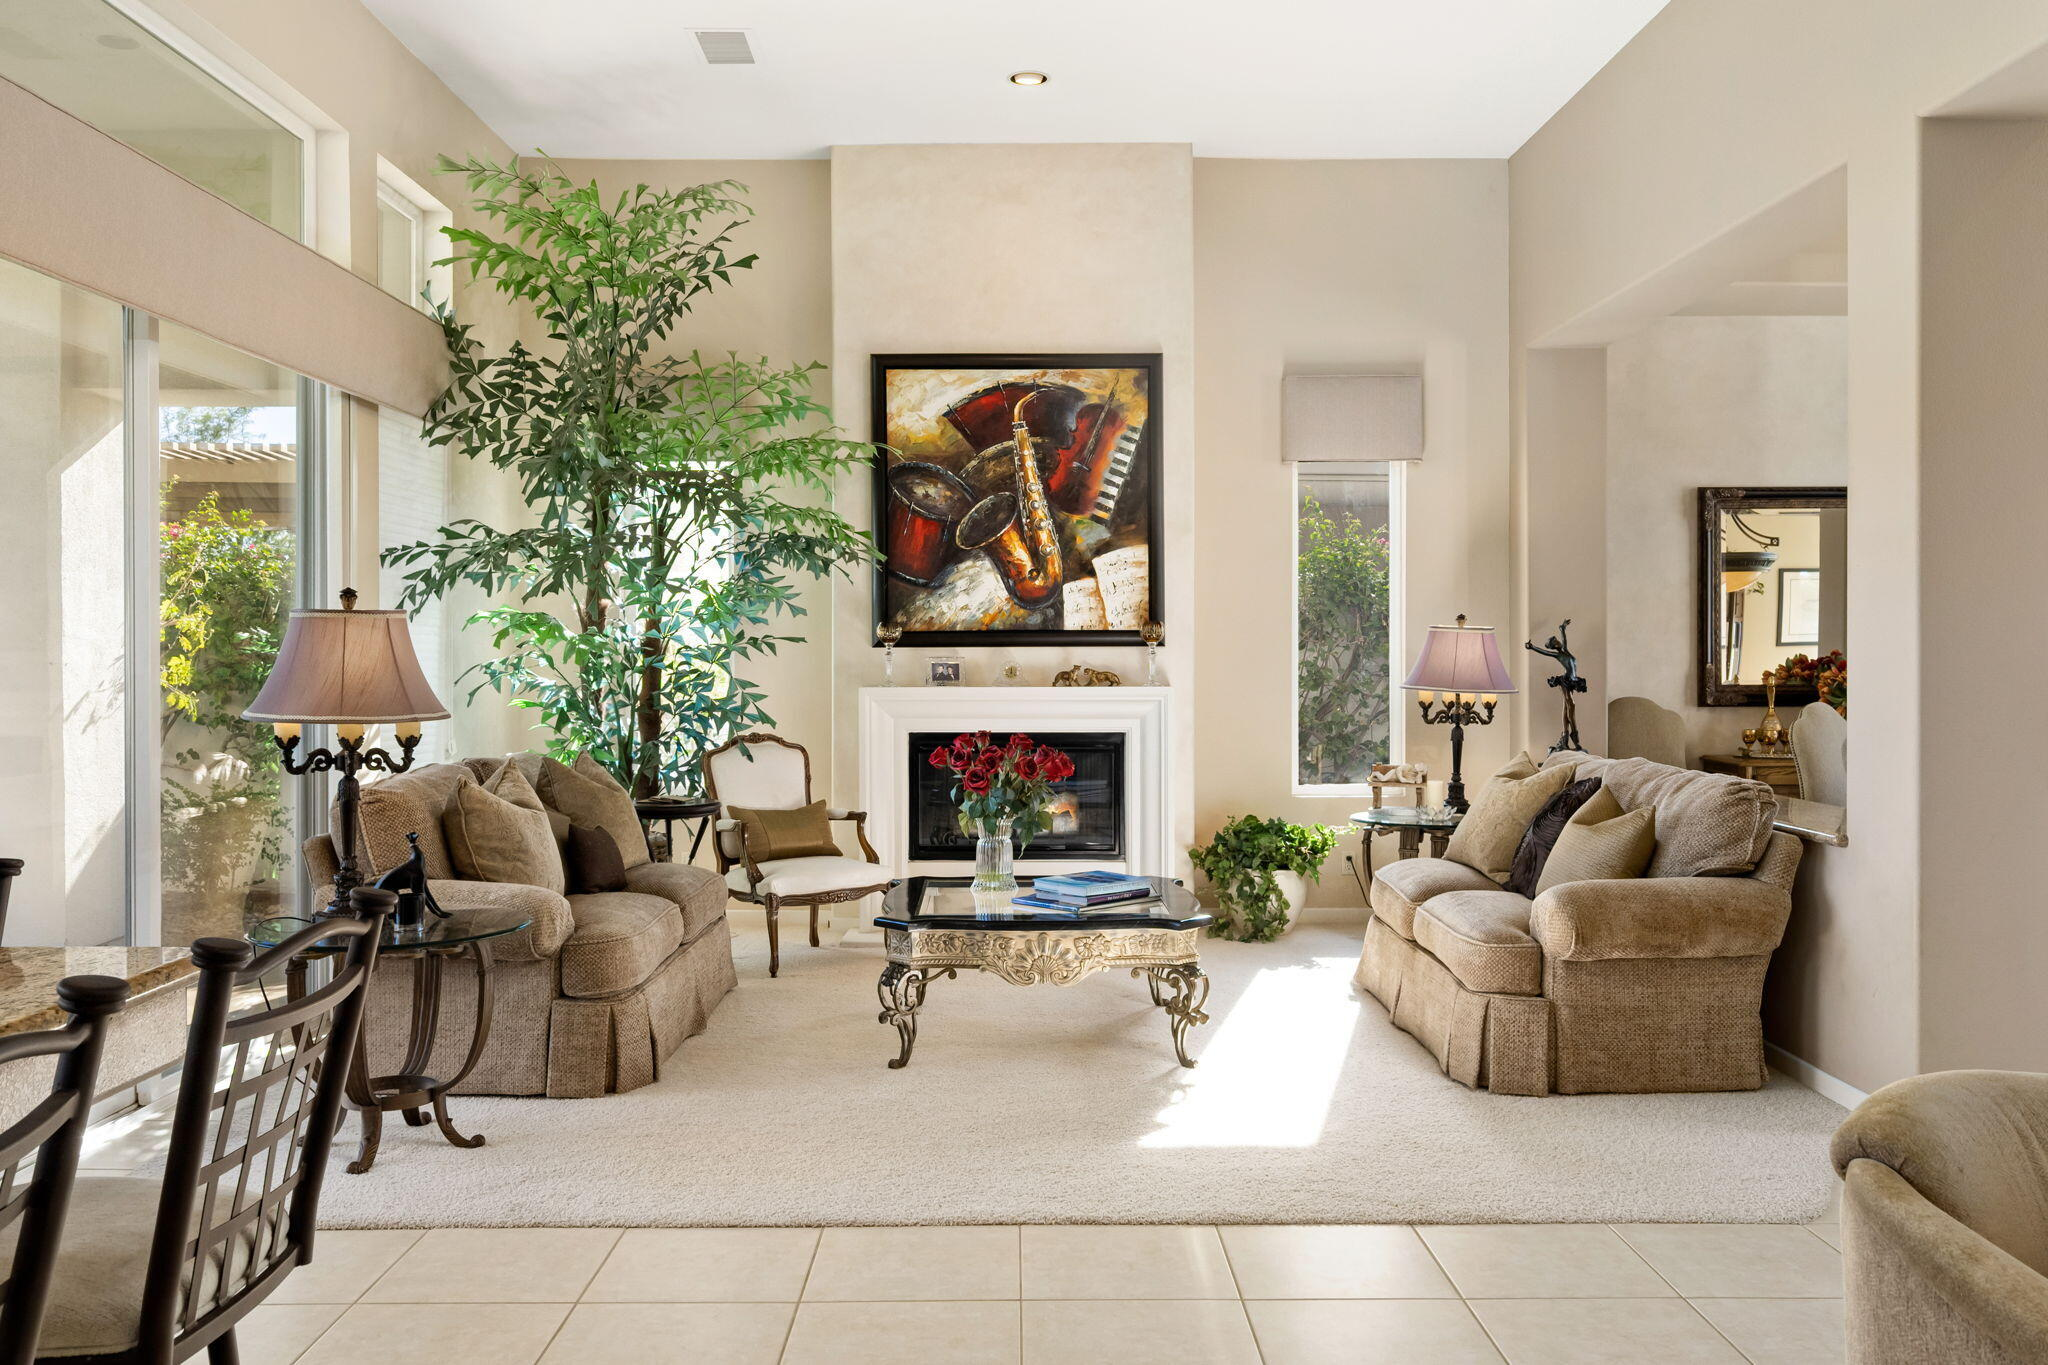 Beautiful Indian Ridge Country Club Single Family Golf Course Home. Popular Open Floor Plan with 3 Bedrooms and 3.5 Bathrooms. Formal Living Room with Fireplace, Formal Dining Room & Family Room with Bar and Built-in Cabinetry including 70'' TV. Gourmet Kitchen with stainless steel appliances, pantry & granite counters. Large Master Bedroom Suite with two closets Bath with dual sinks, vanity, separate Shower & Spa Tub. All bedrooms are ensuite, plus a lovely powder room for guests. Two new A/C units were installed last year, plus another A/C in the 3rd Bedroom/Office. The exterior of the home has recently been painted. This lovely home is centrally located in the PUD section of the club on a elevated lot, on a Quiet interior street & close to several community pools and spas. The patio has a built-in BBQ & Beautiful Fairway & Chocolate Mountain Views. Fabulous resort style country club features two 18 hole Arnold Palmer Golf Courses, 14 Tennis and Pickle Ball Courts, Lap Pool, Dog Park, 30 community pools& spas & 3 great Restaurants. The state-of-the-art Fitness Center includes daily classes, steam room & sauna. The full-service Day Spa offers Massage, Facial & Hair & Nail Salon services. Club members enjoy an extensive Social Calendar with numerous activities & events that include something for everyone. HOA dues include Cable TV, Trash collection, maintenance of common area landscaping and 24 hour security guard service. Membership available.